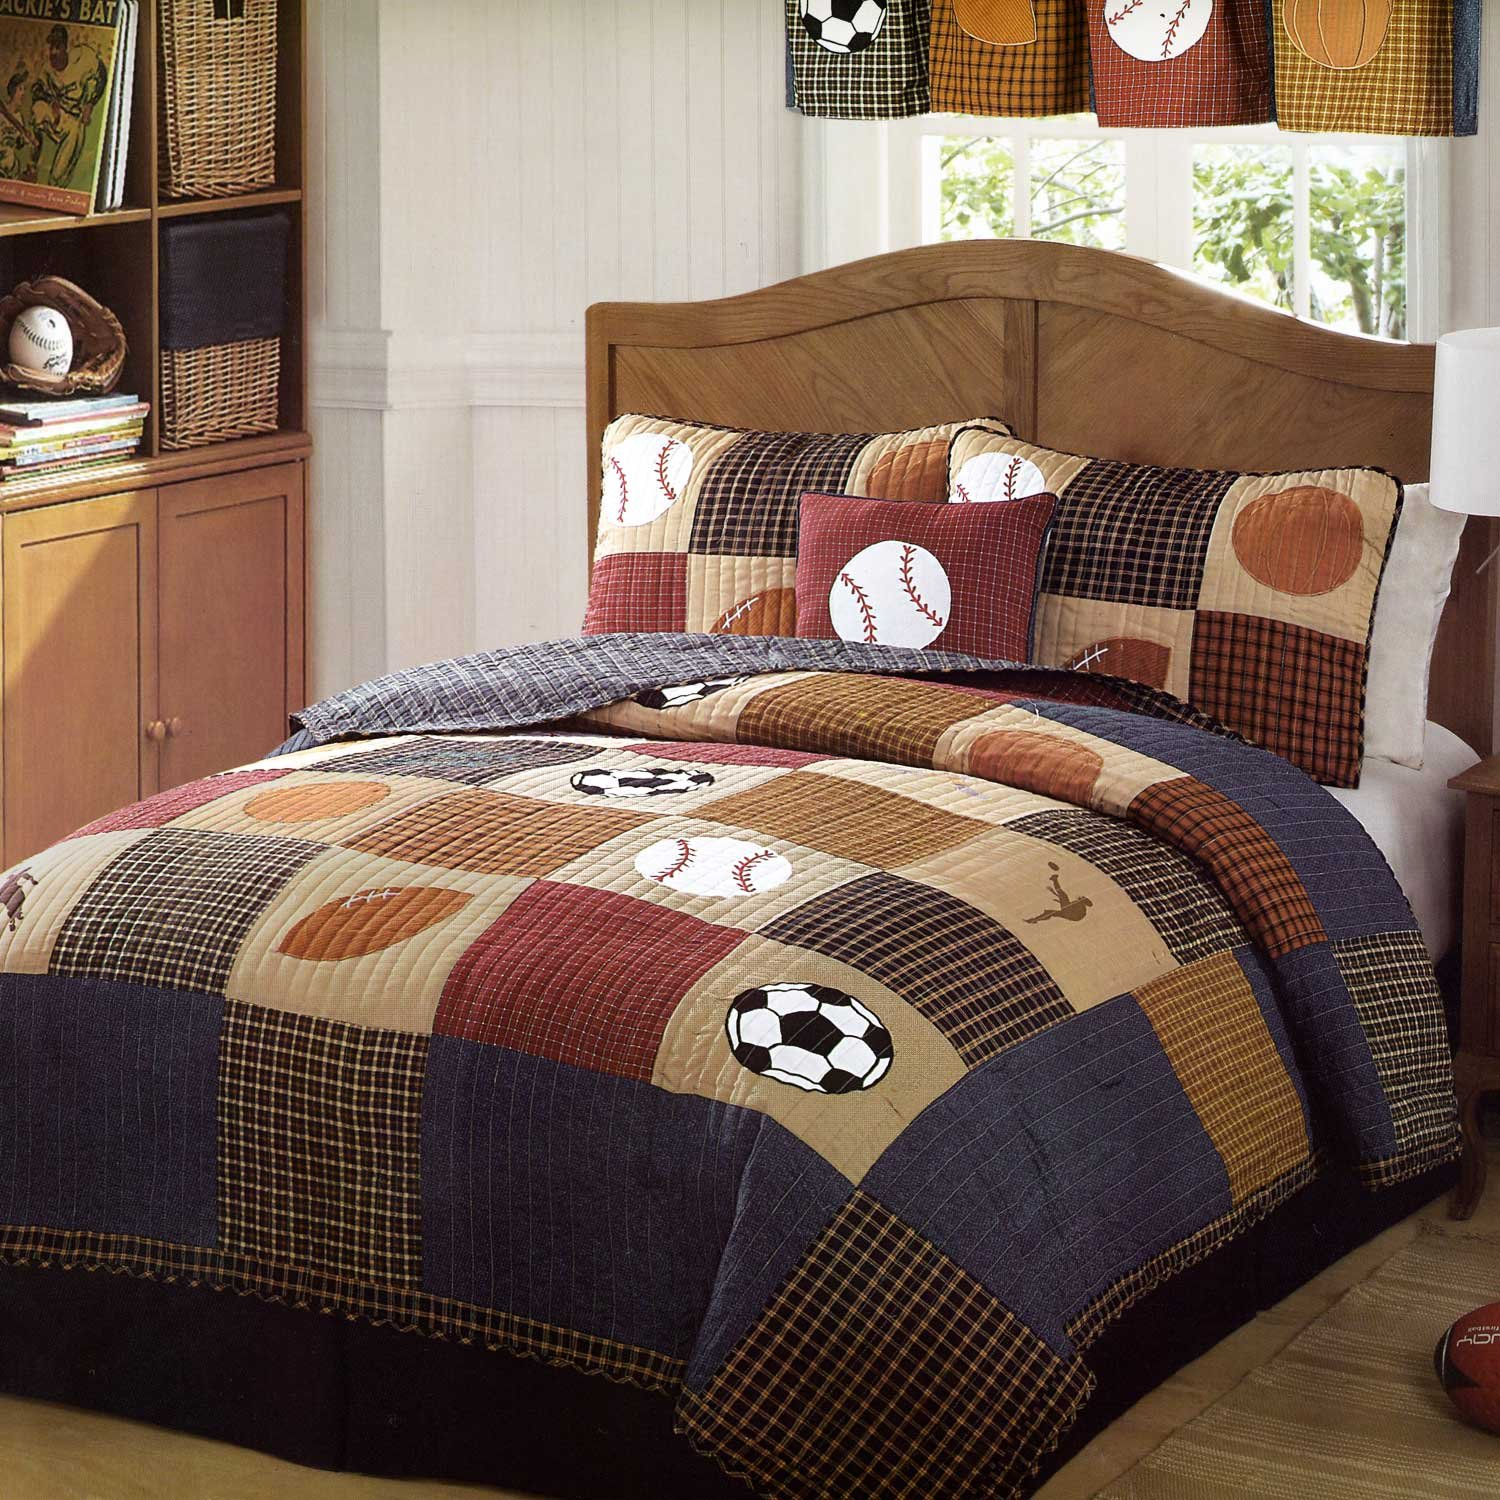 Sports Bedding For Kids Fel7 Com